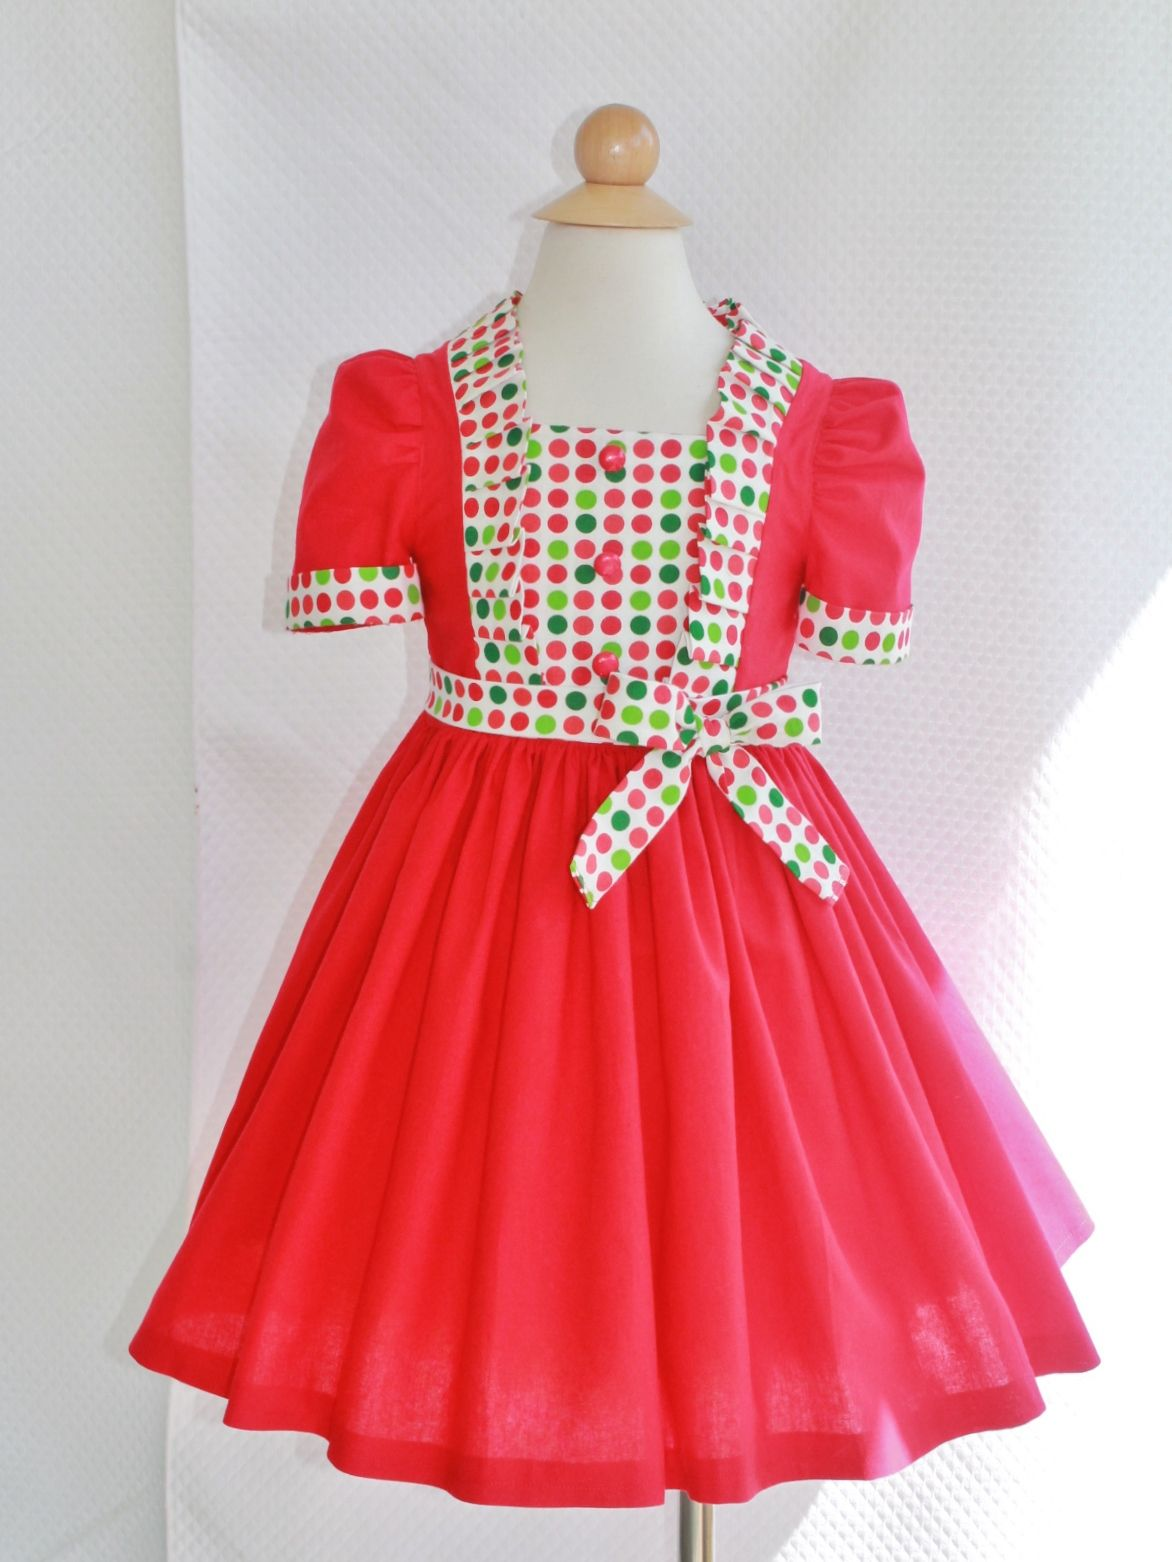 Christmas dress boutiques - Christmas Dress At Outtahand Creations Boutique Https Www Etsy Com